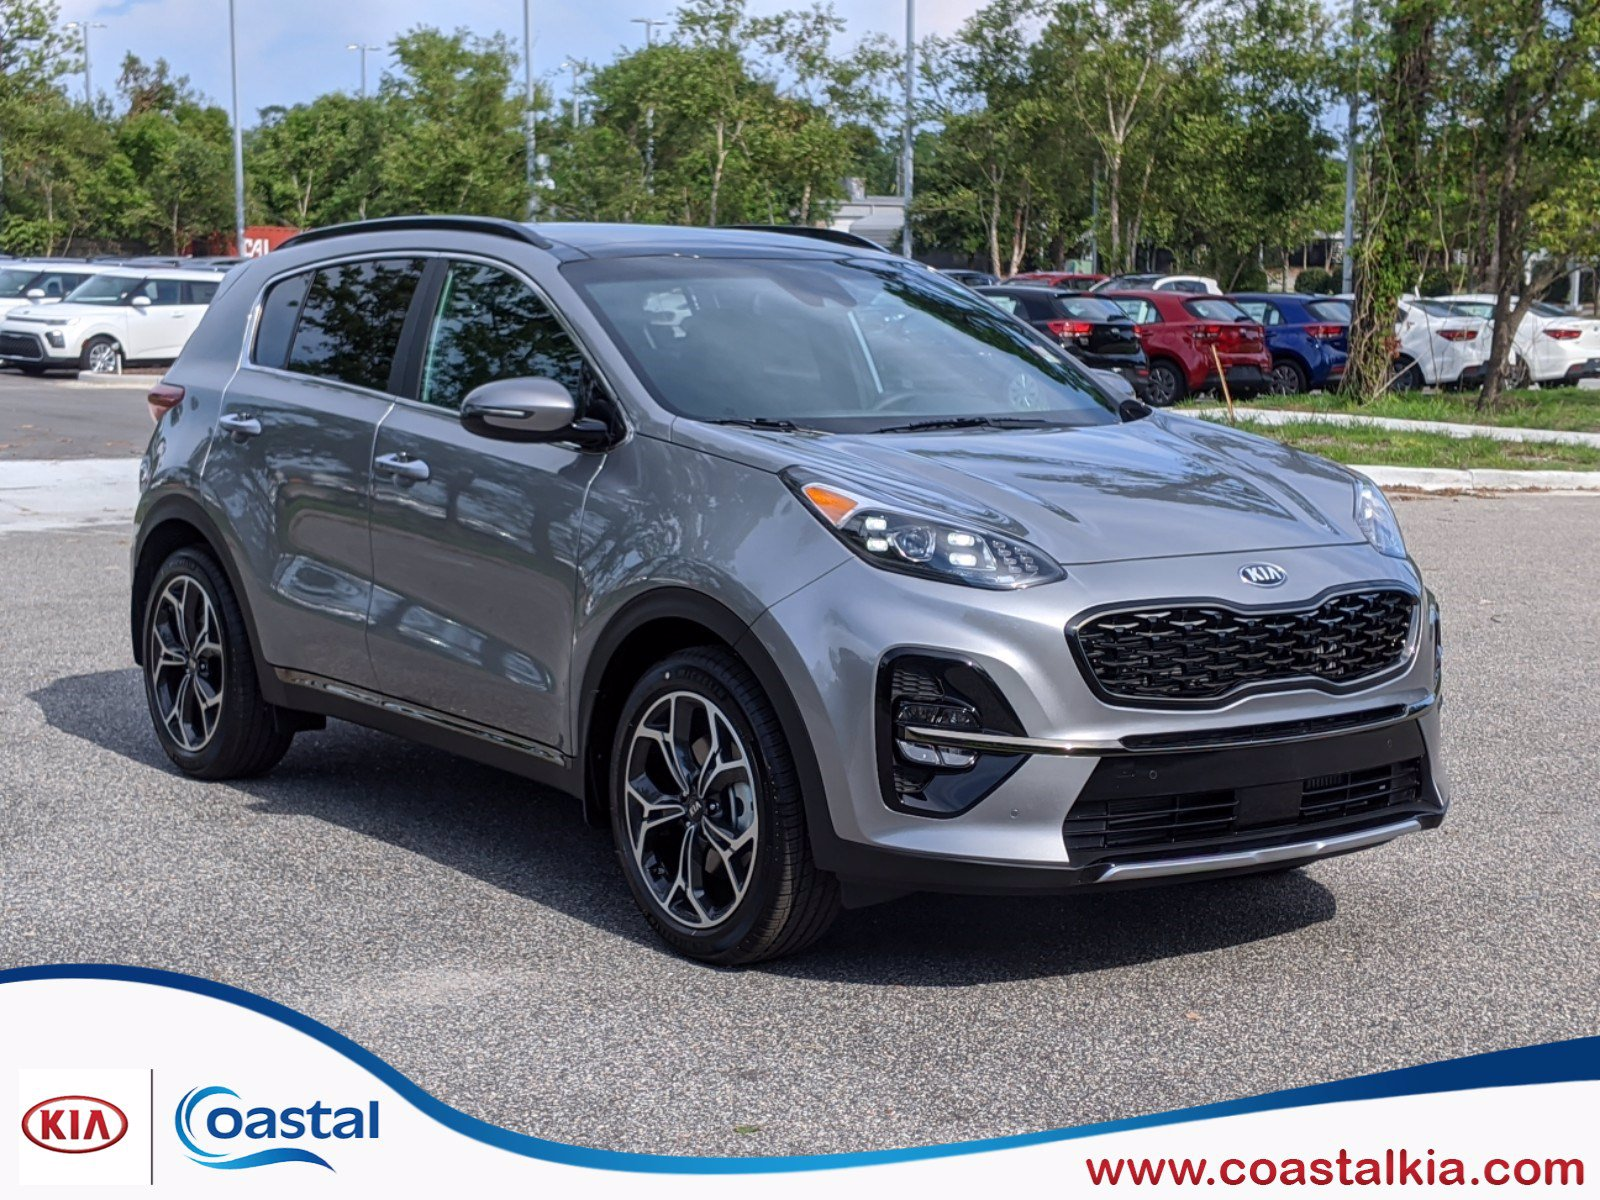 New 2021 Kia Sportage SX Turbo